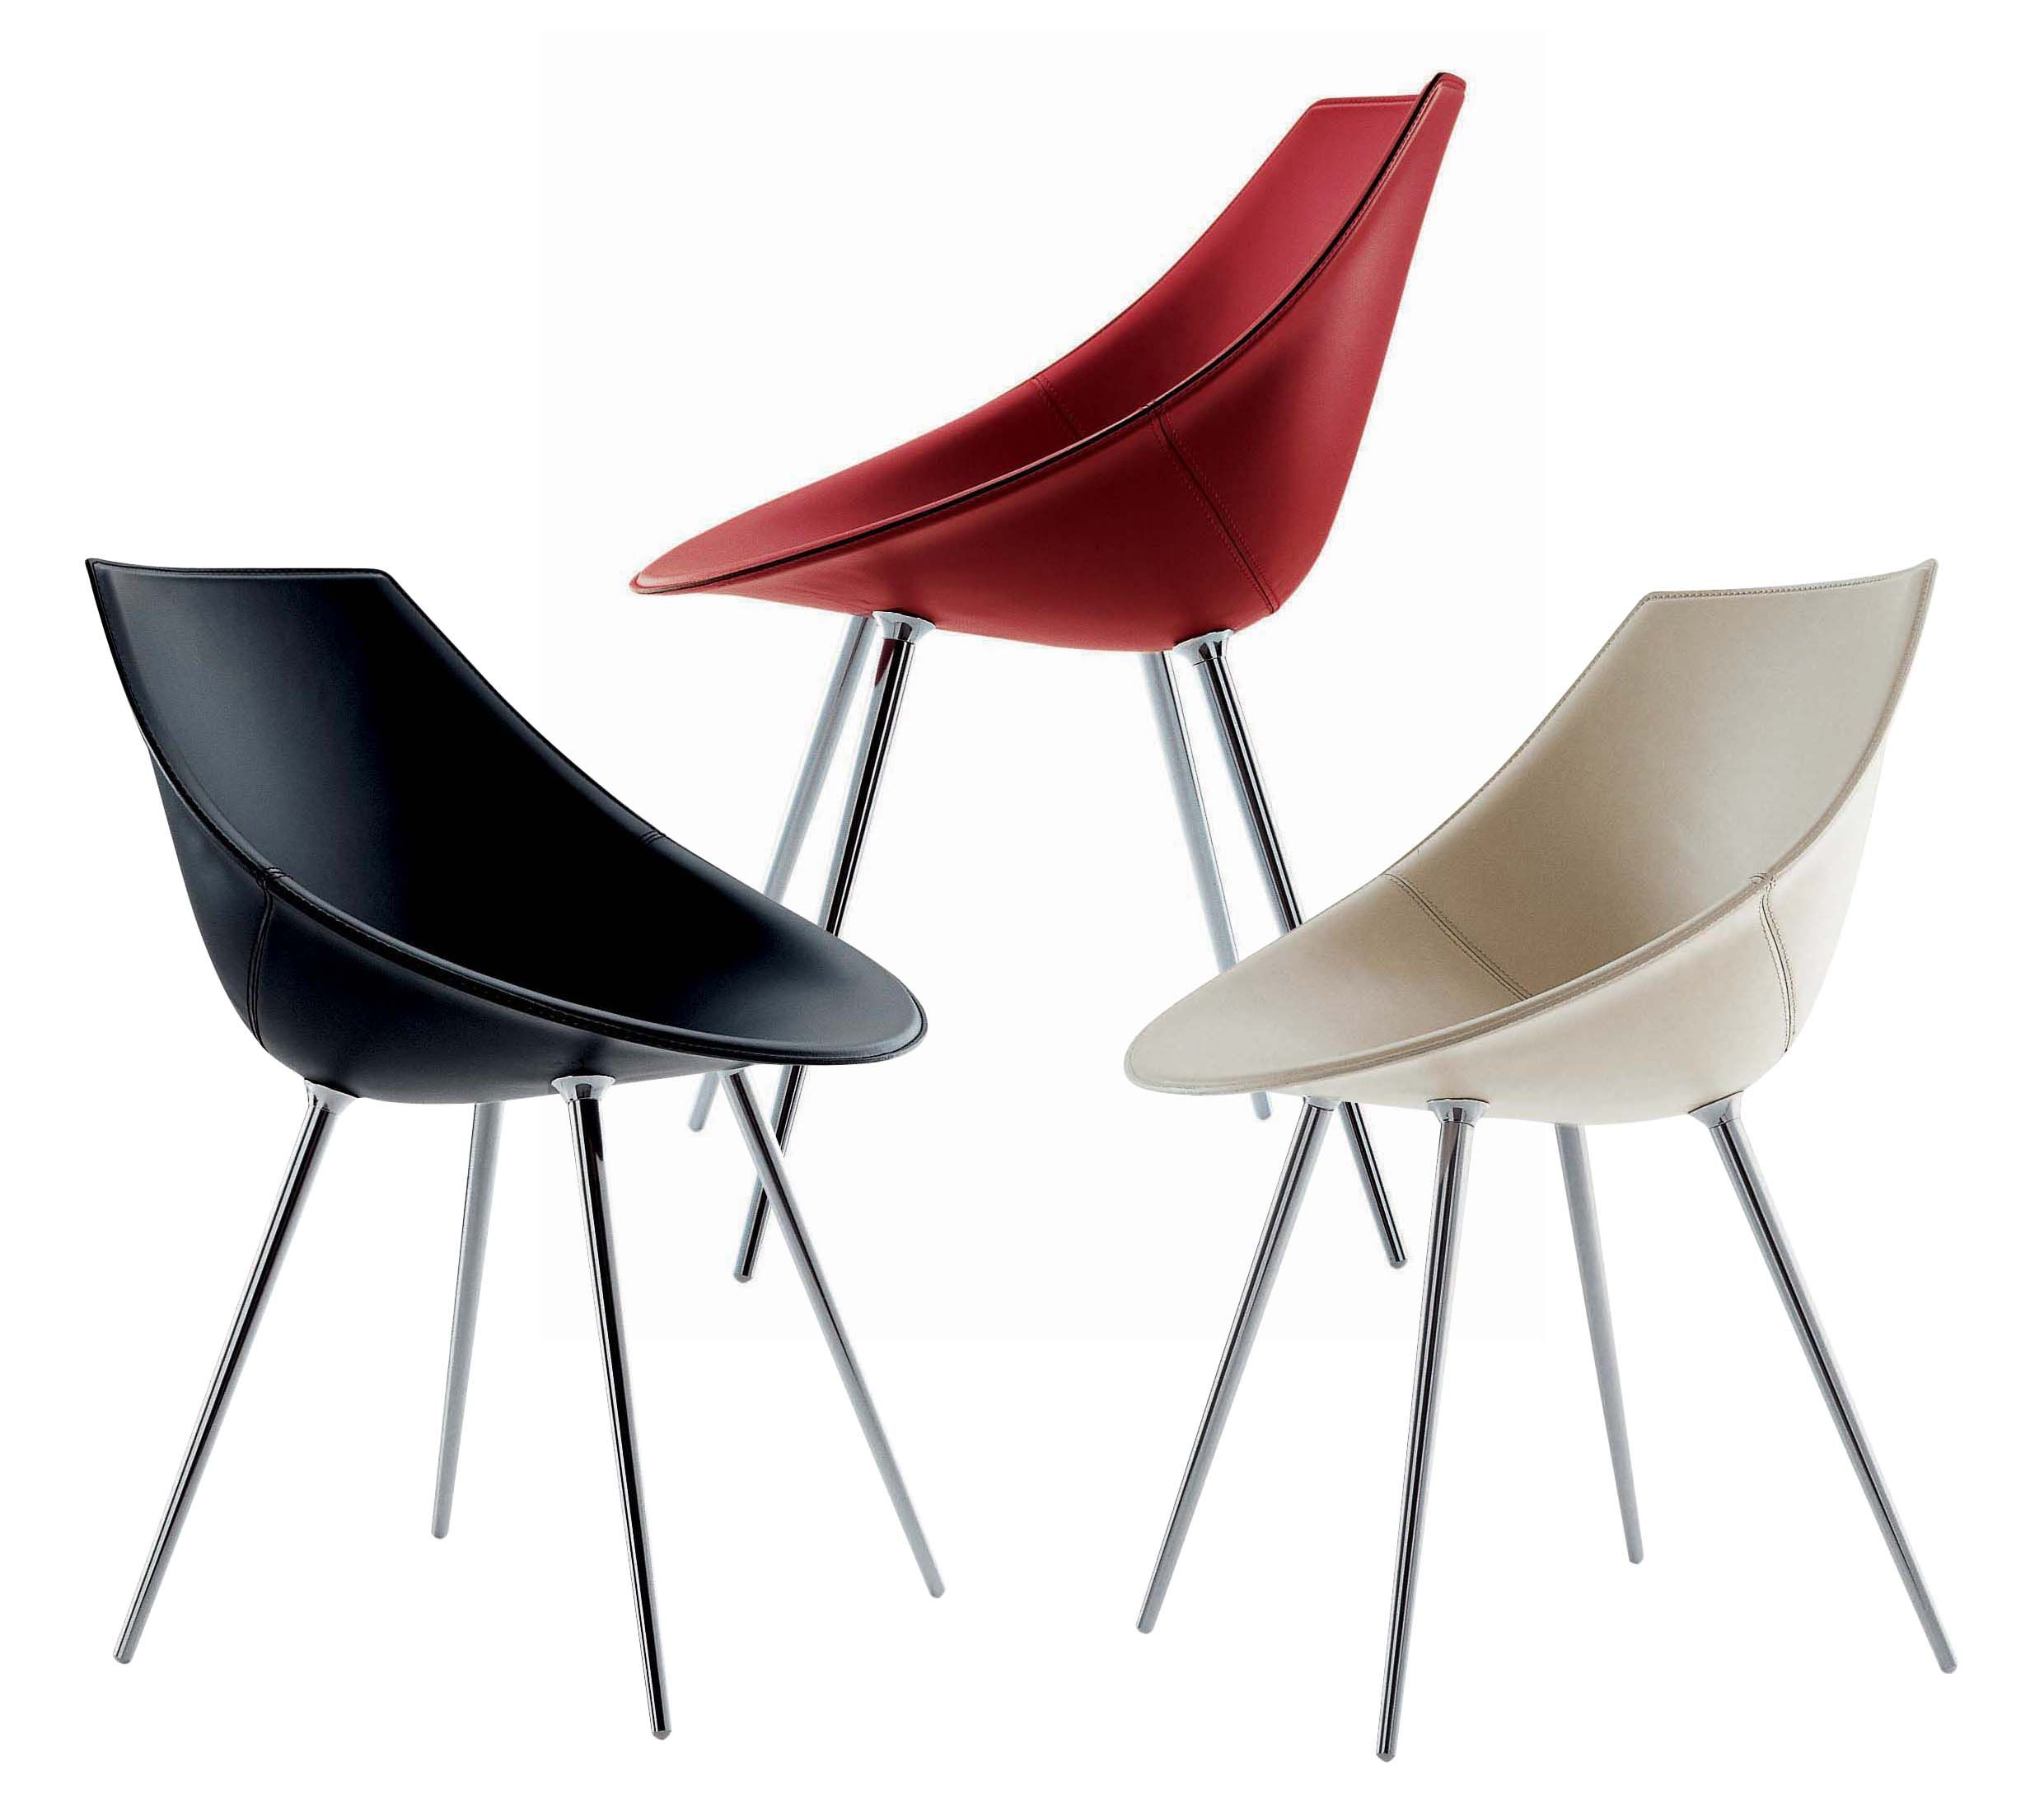 Chaise Starck Driade Lagó Dining Chair By Philippe Starck For Driade Sohomod Blog